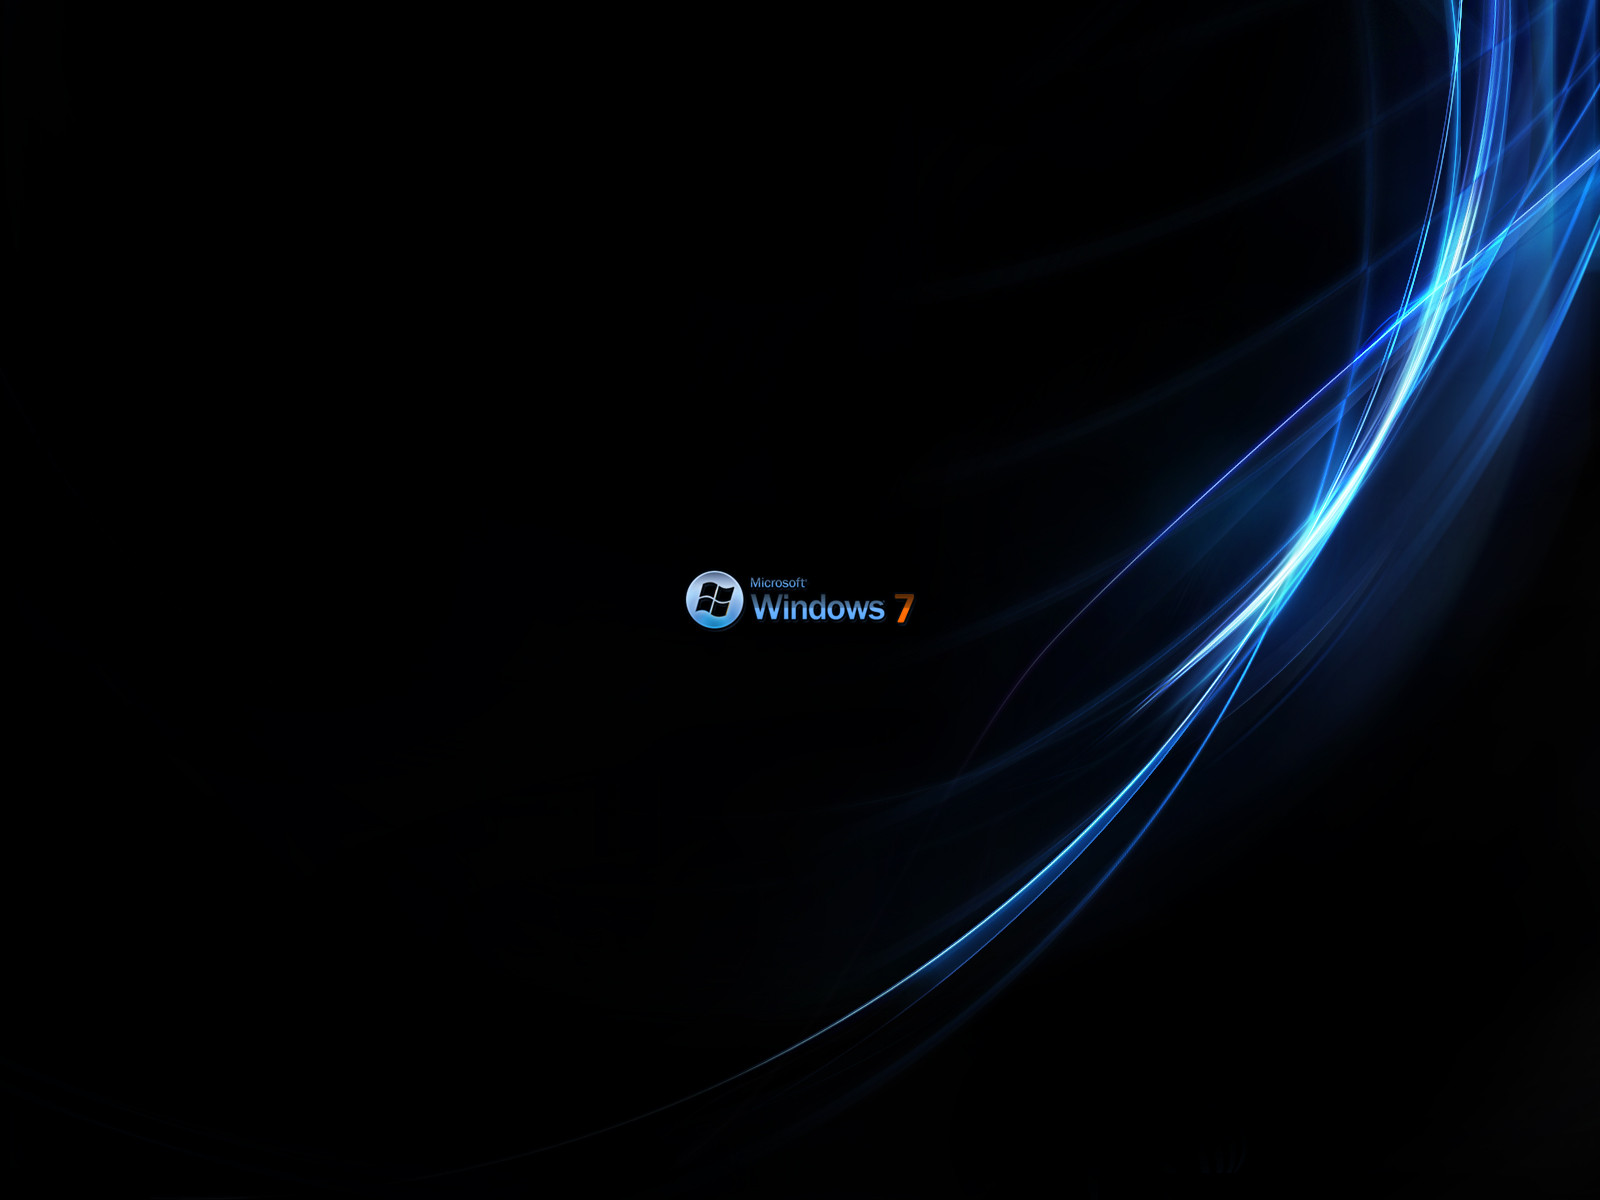 http://4.bp.blogspot.com/-wjBIf6PeFn4/T9jbTi5qutI/AAAAAAAAAWs/XOaLeixjh14/s1600/windows-7-blue-orange-black-wallpaper.jpg